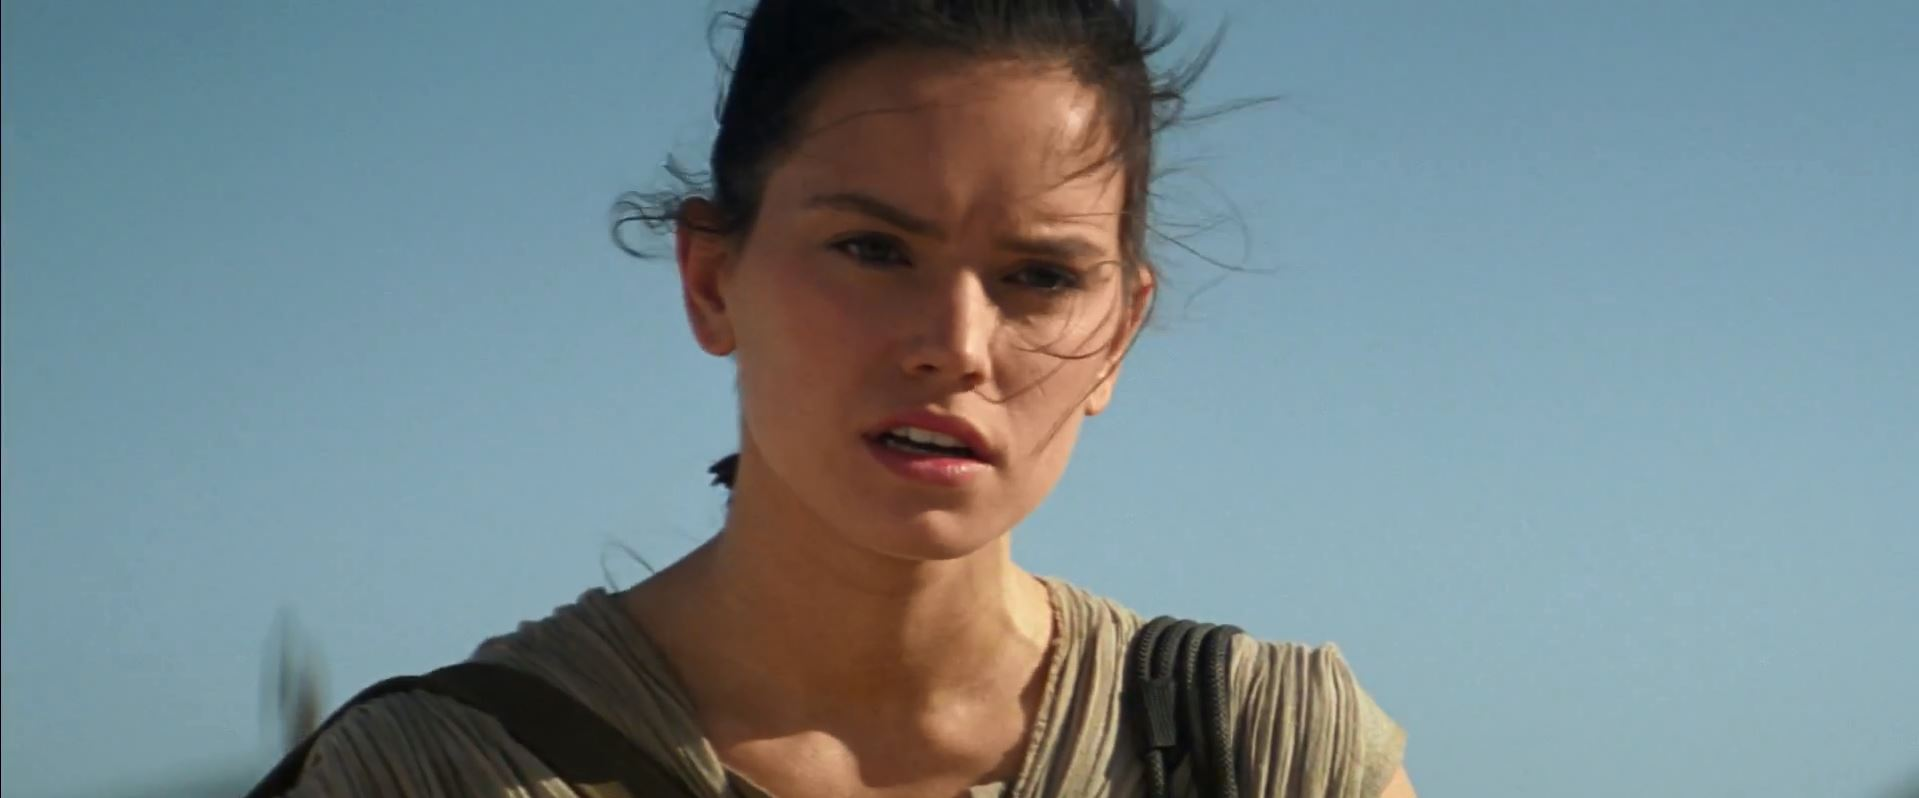 Rey (Daisy Ridley). New Star Wars The Force Awakens Trailer Released!